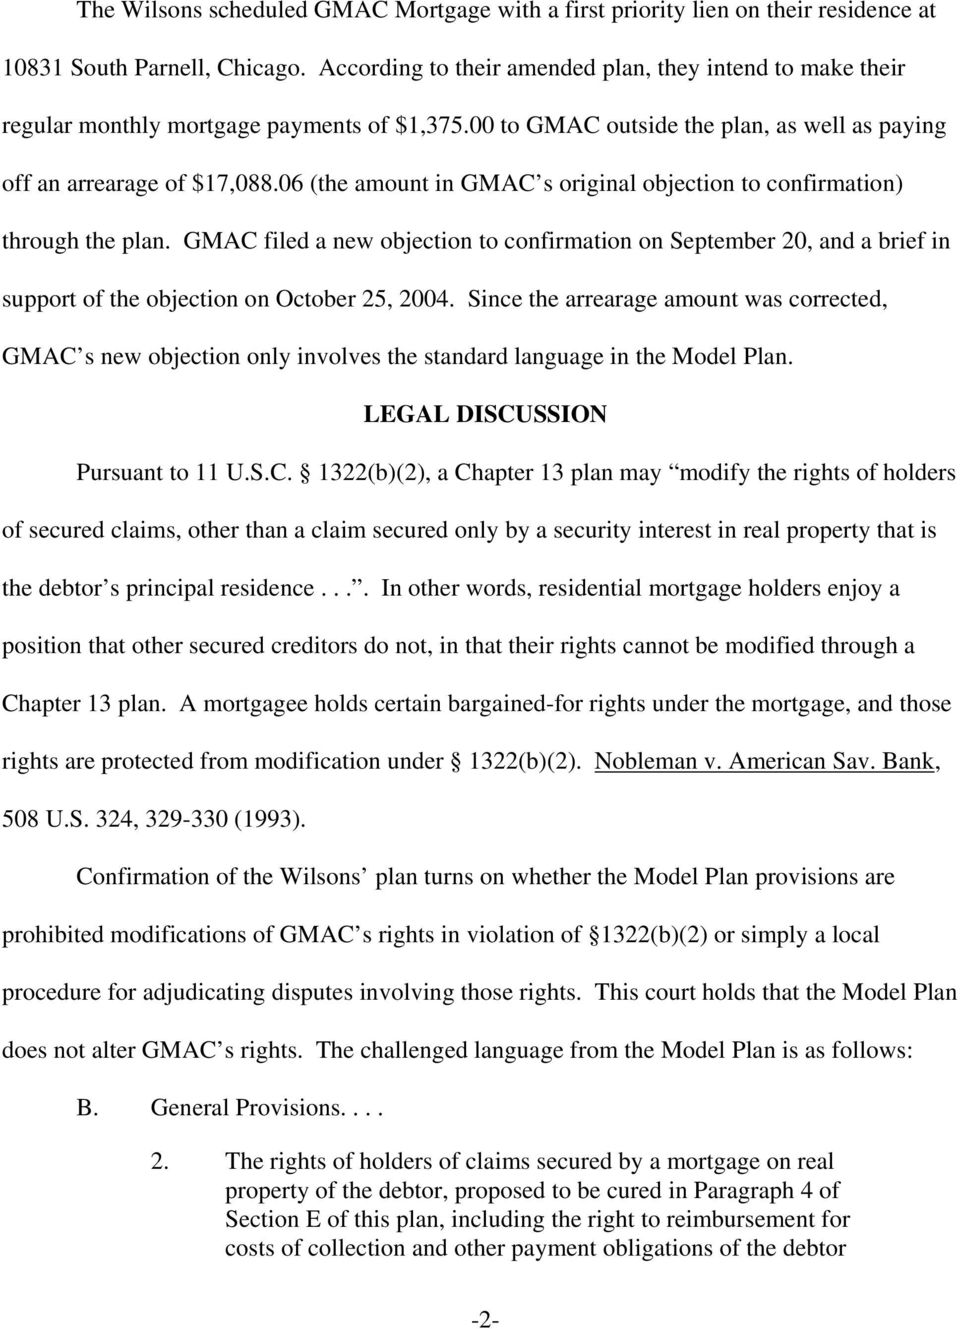 06 (the amount in GMAC s original objection to confirmation) through the plan. GMAC filed a new objection to confirmation on September 20, and a brief in support of the objection on October 25, 2004.